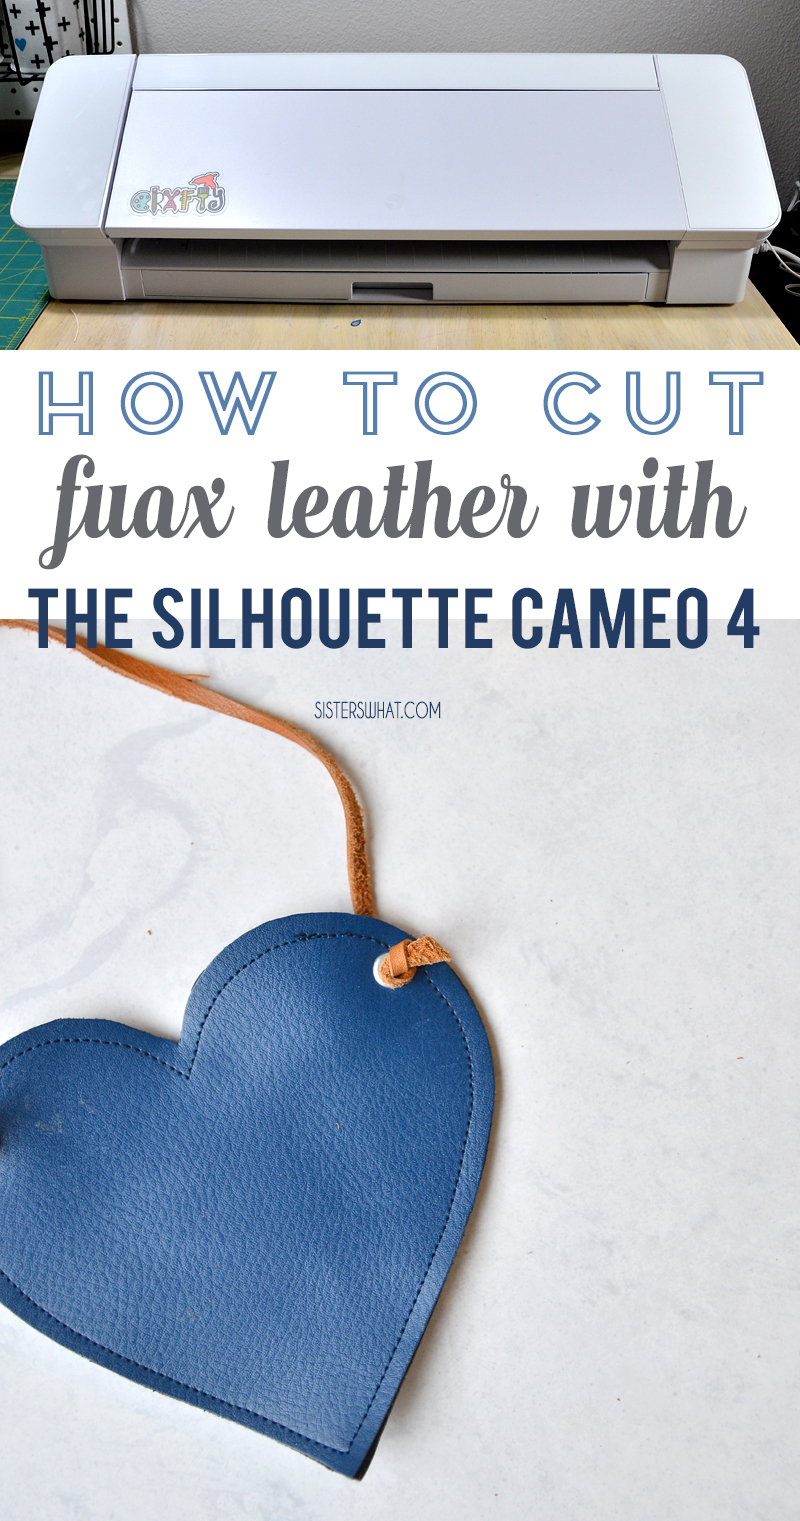 How to cut with faux leather with cameo 4